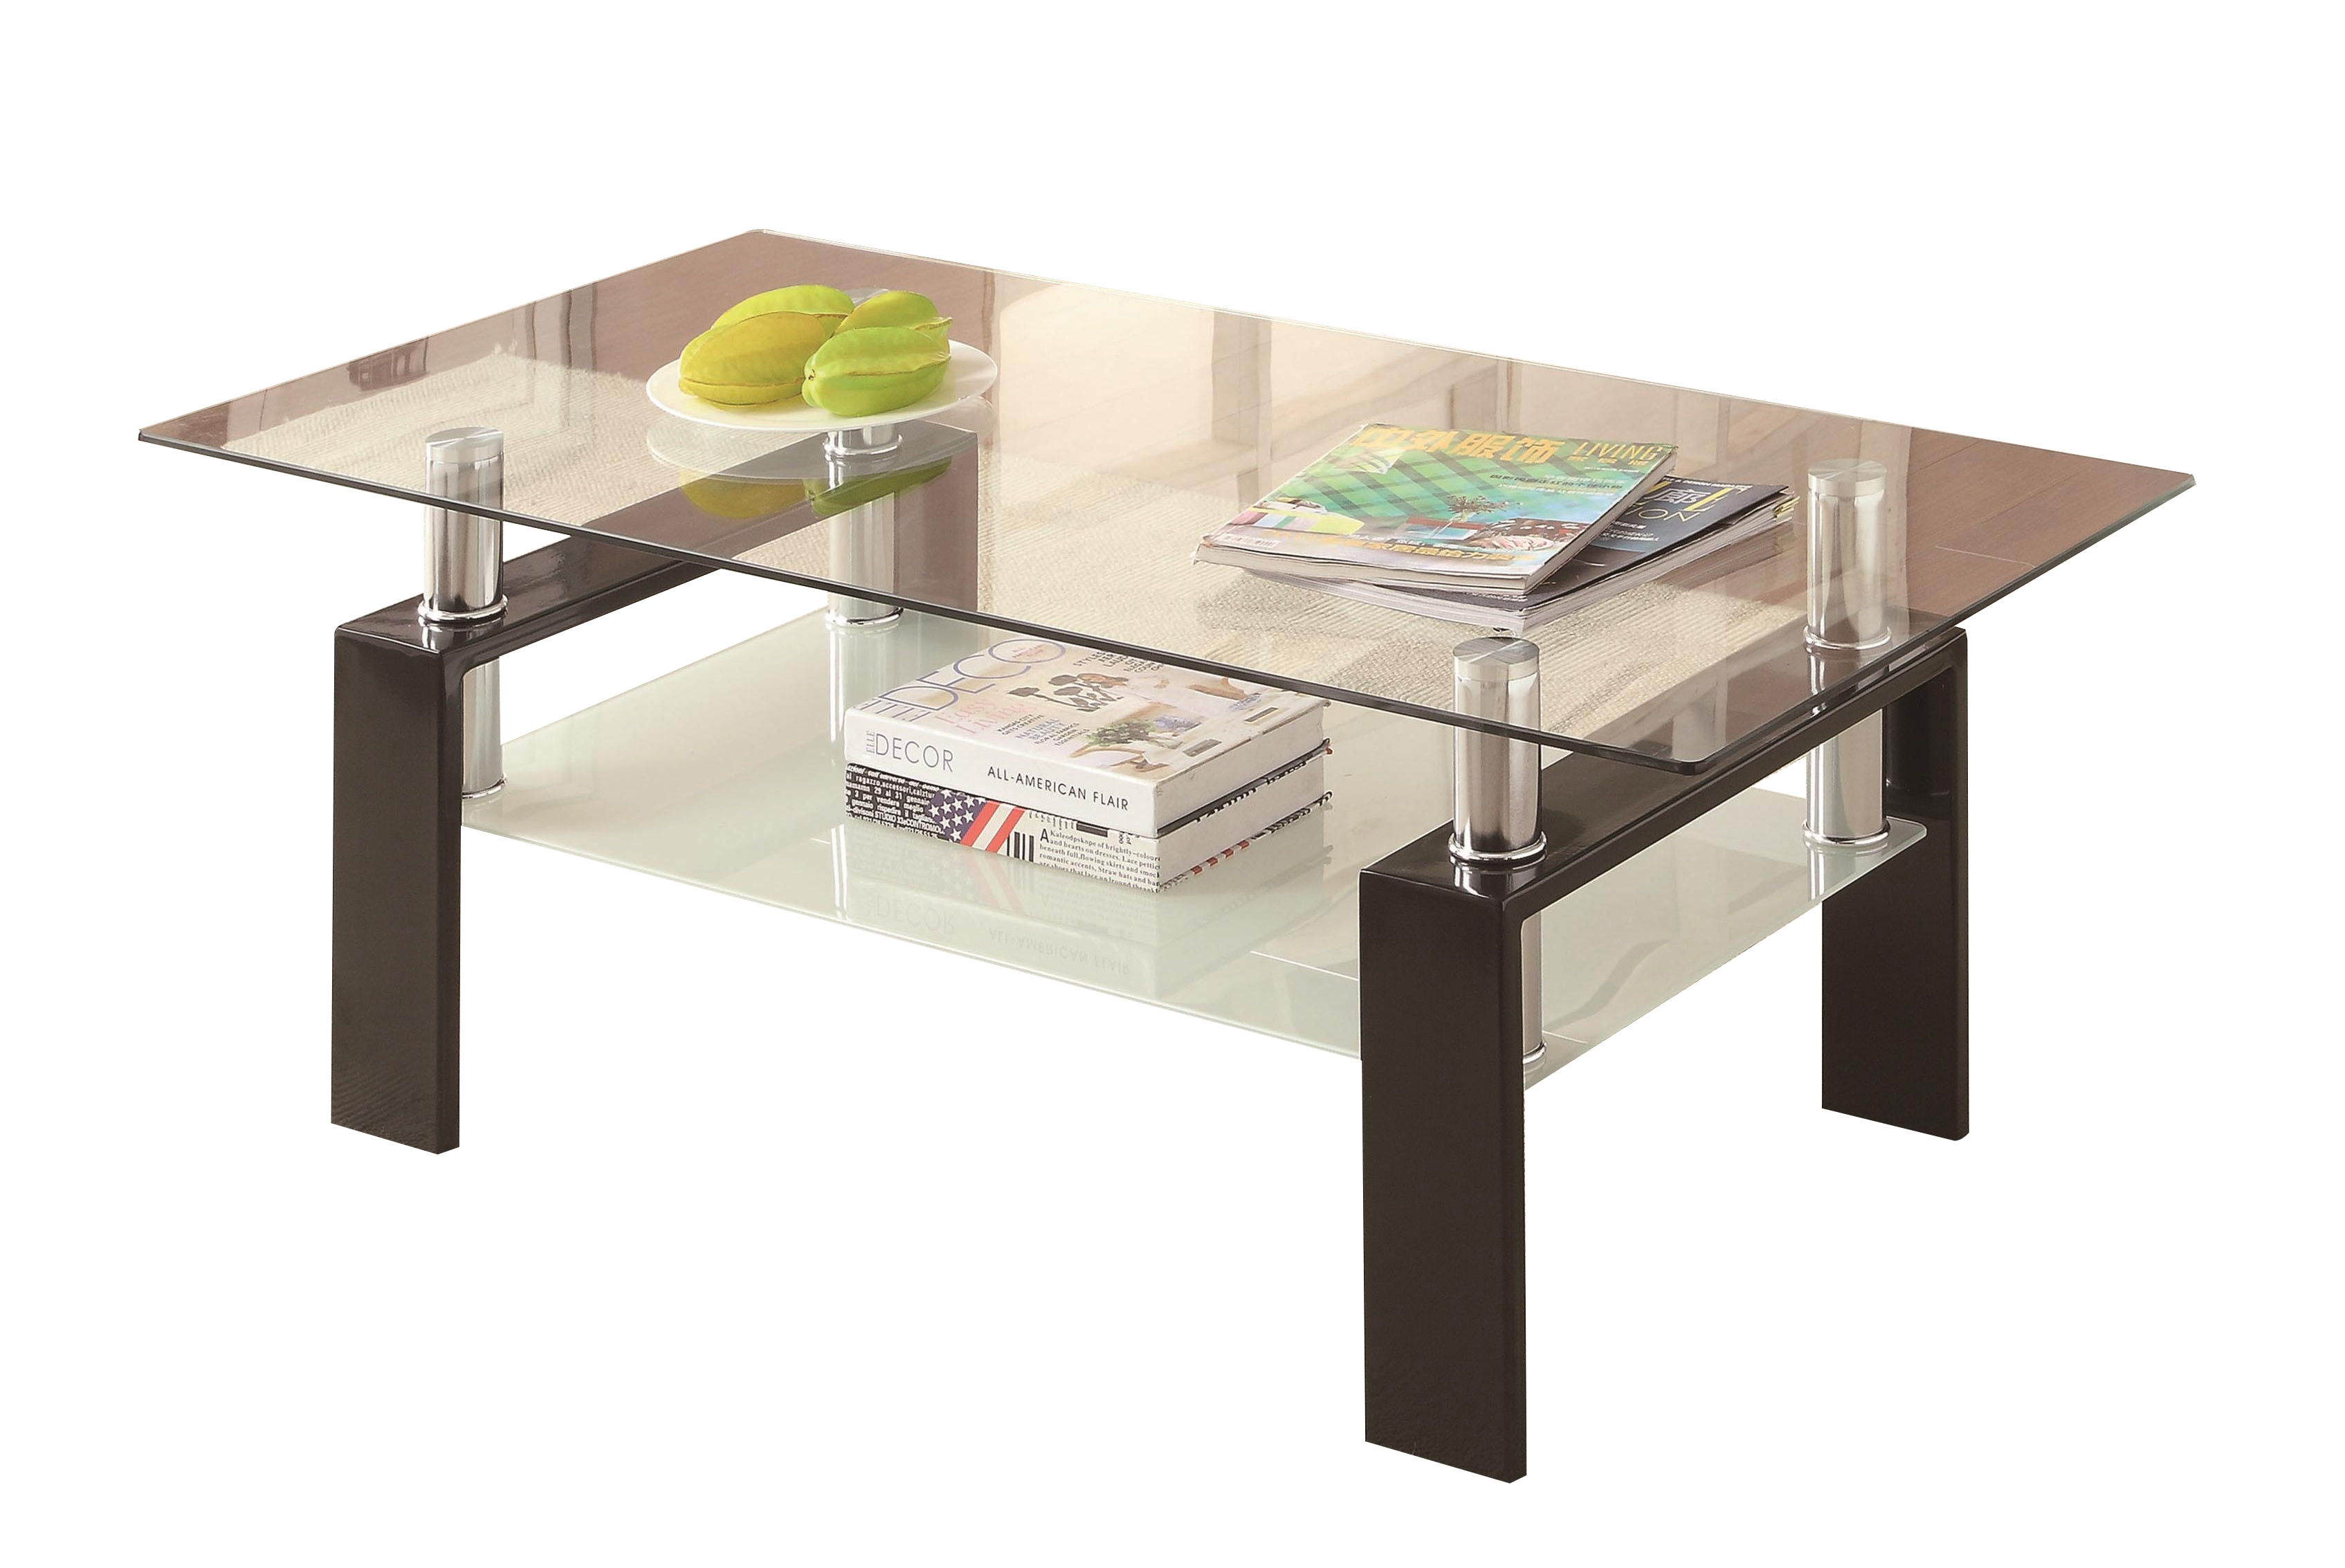 Surprising Coaster Furniture Black Glass Top Coffee Table Camellatalisay Diy Chair Ideas Camellatalisaycom